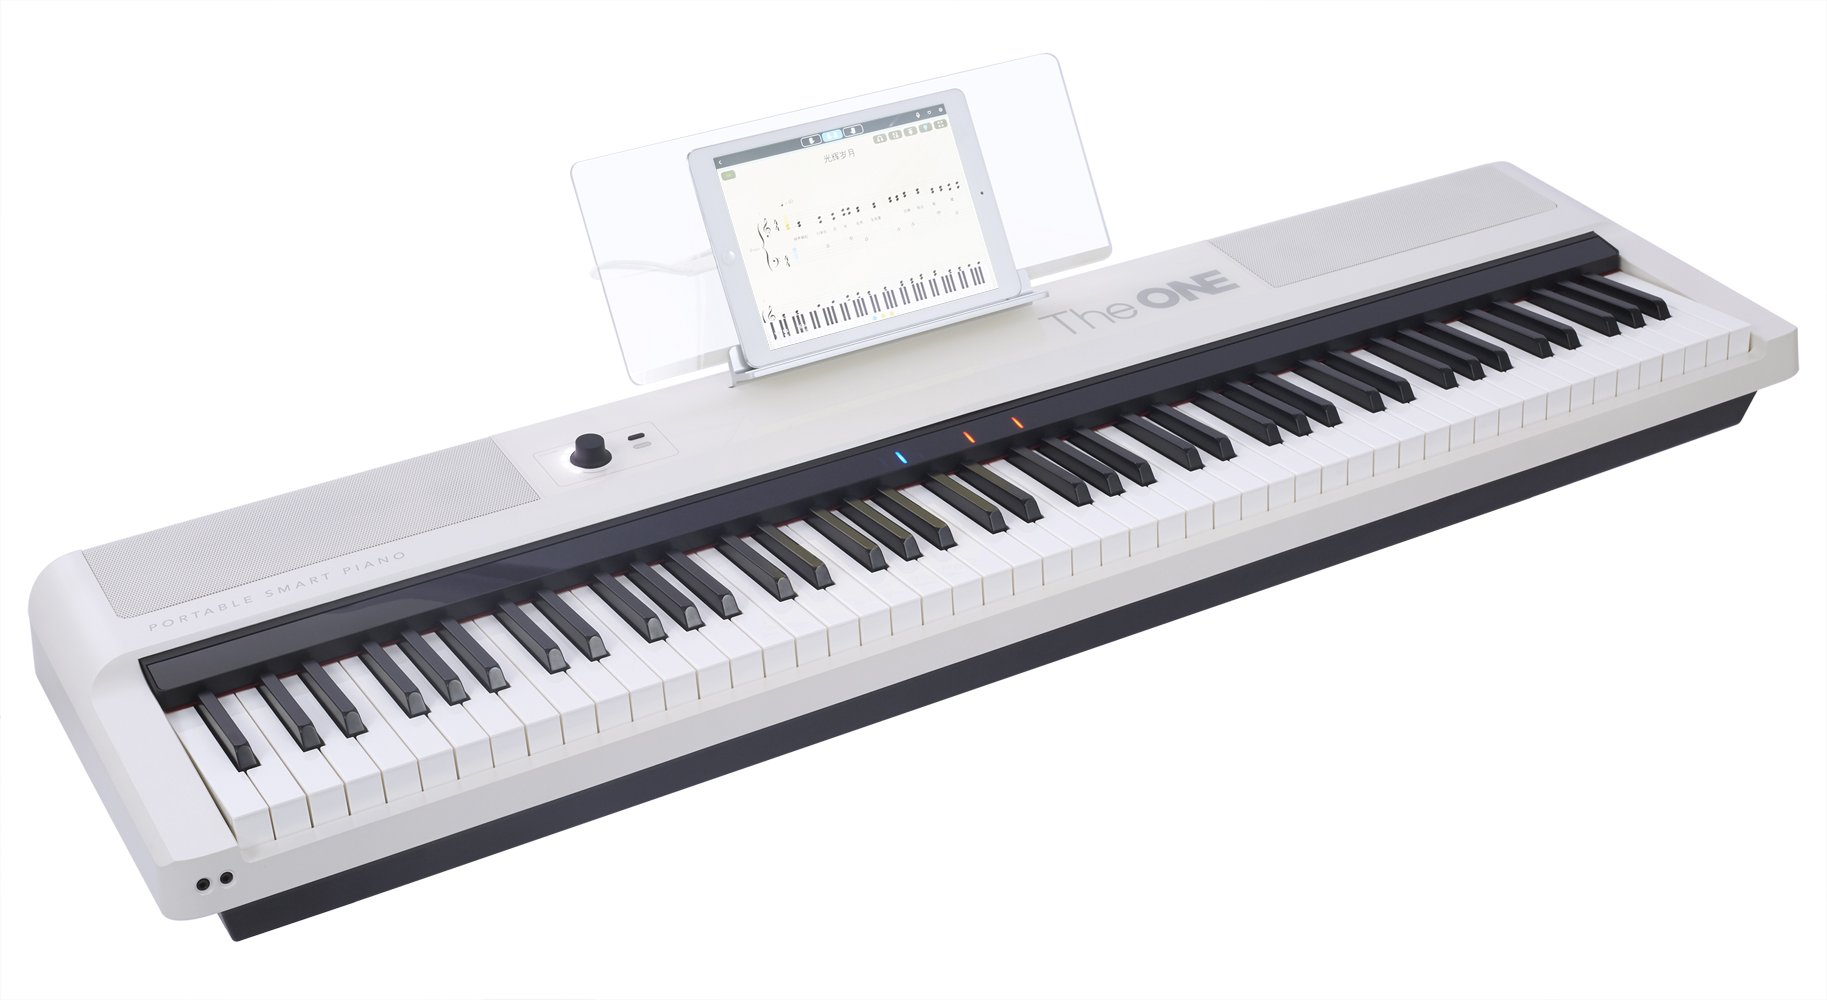 The ONE Smart Keyboard Pro, 88-Key Digital Piano Keyboard, Portable Digital Piano, Weighted Action Keys, White by The ONE Music Group